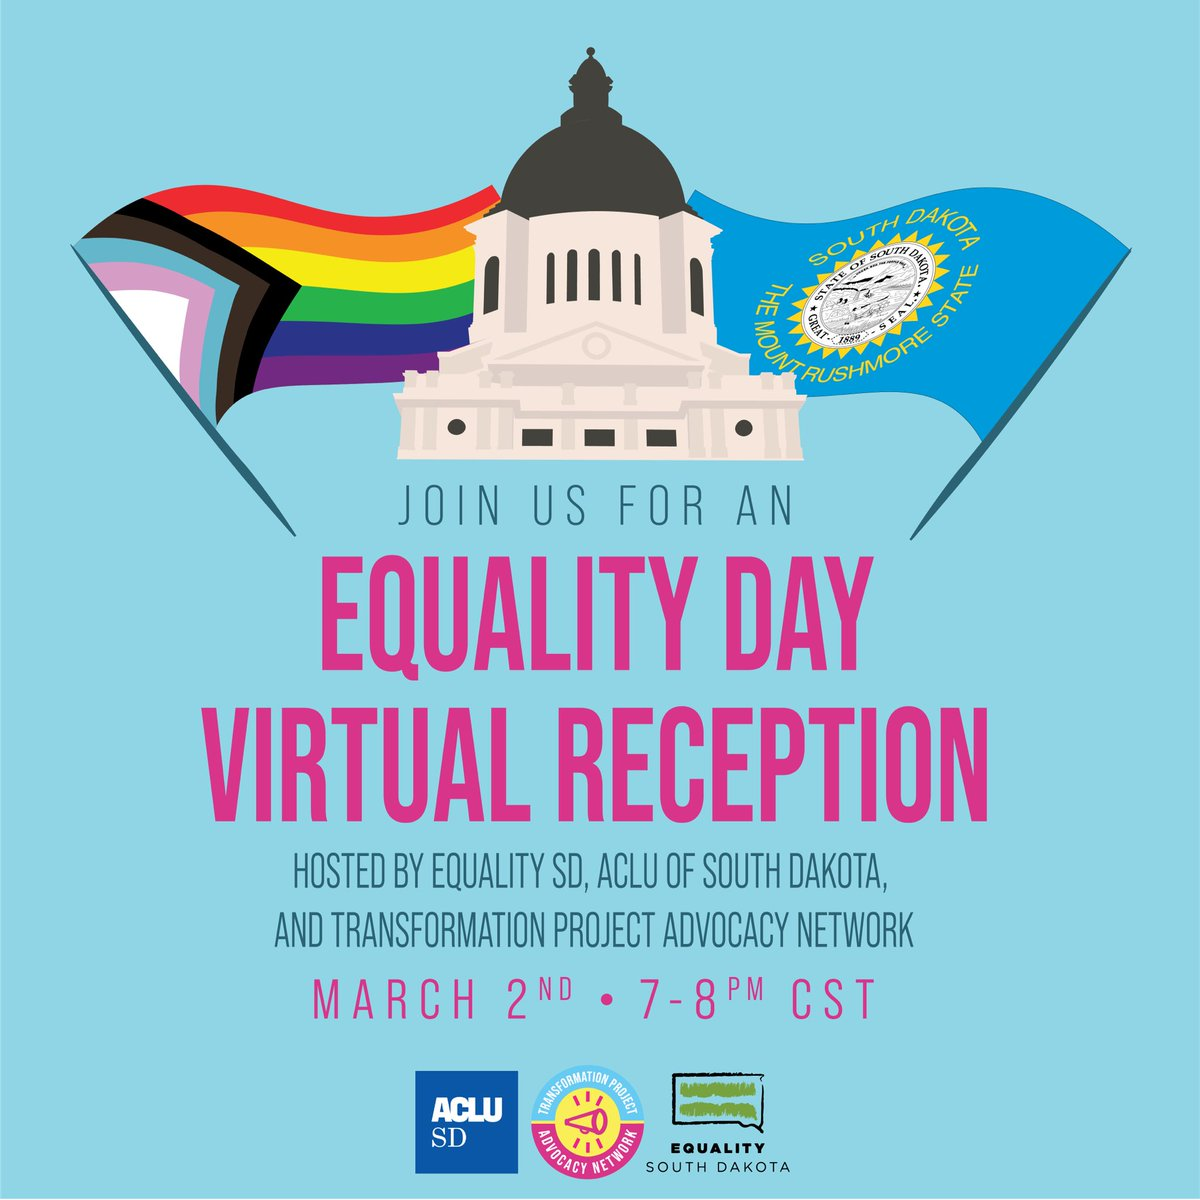 Please join us for Equality Day Virtual Reception, hosted by Equality SD, ACLU of South Dakota, and the Transformation Project Advocacy Network.  Come meet your representatives, and share your thoughts with other LGBTQIA+ individuals and allies!   Link in bio!